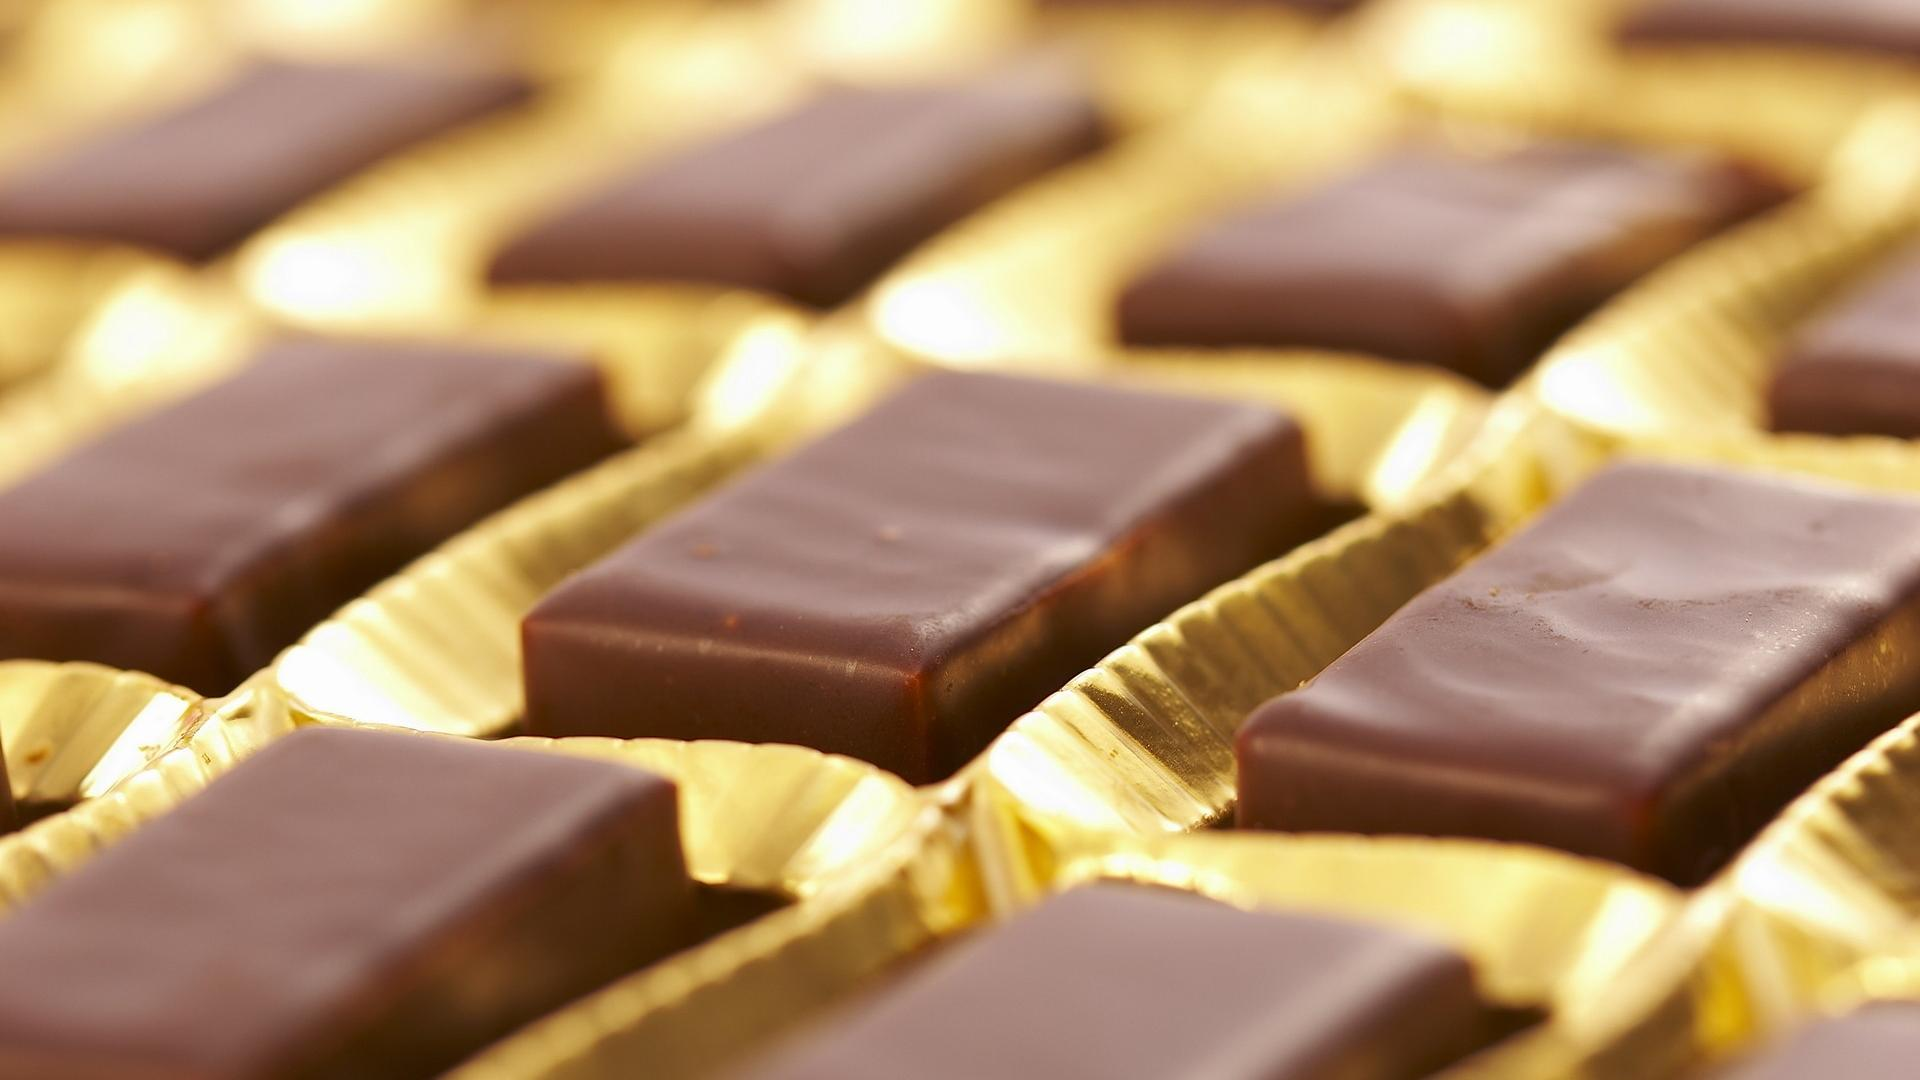 Awesome Chocolate Candy Wallpaper